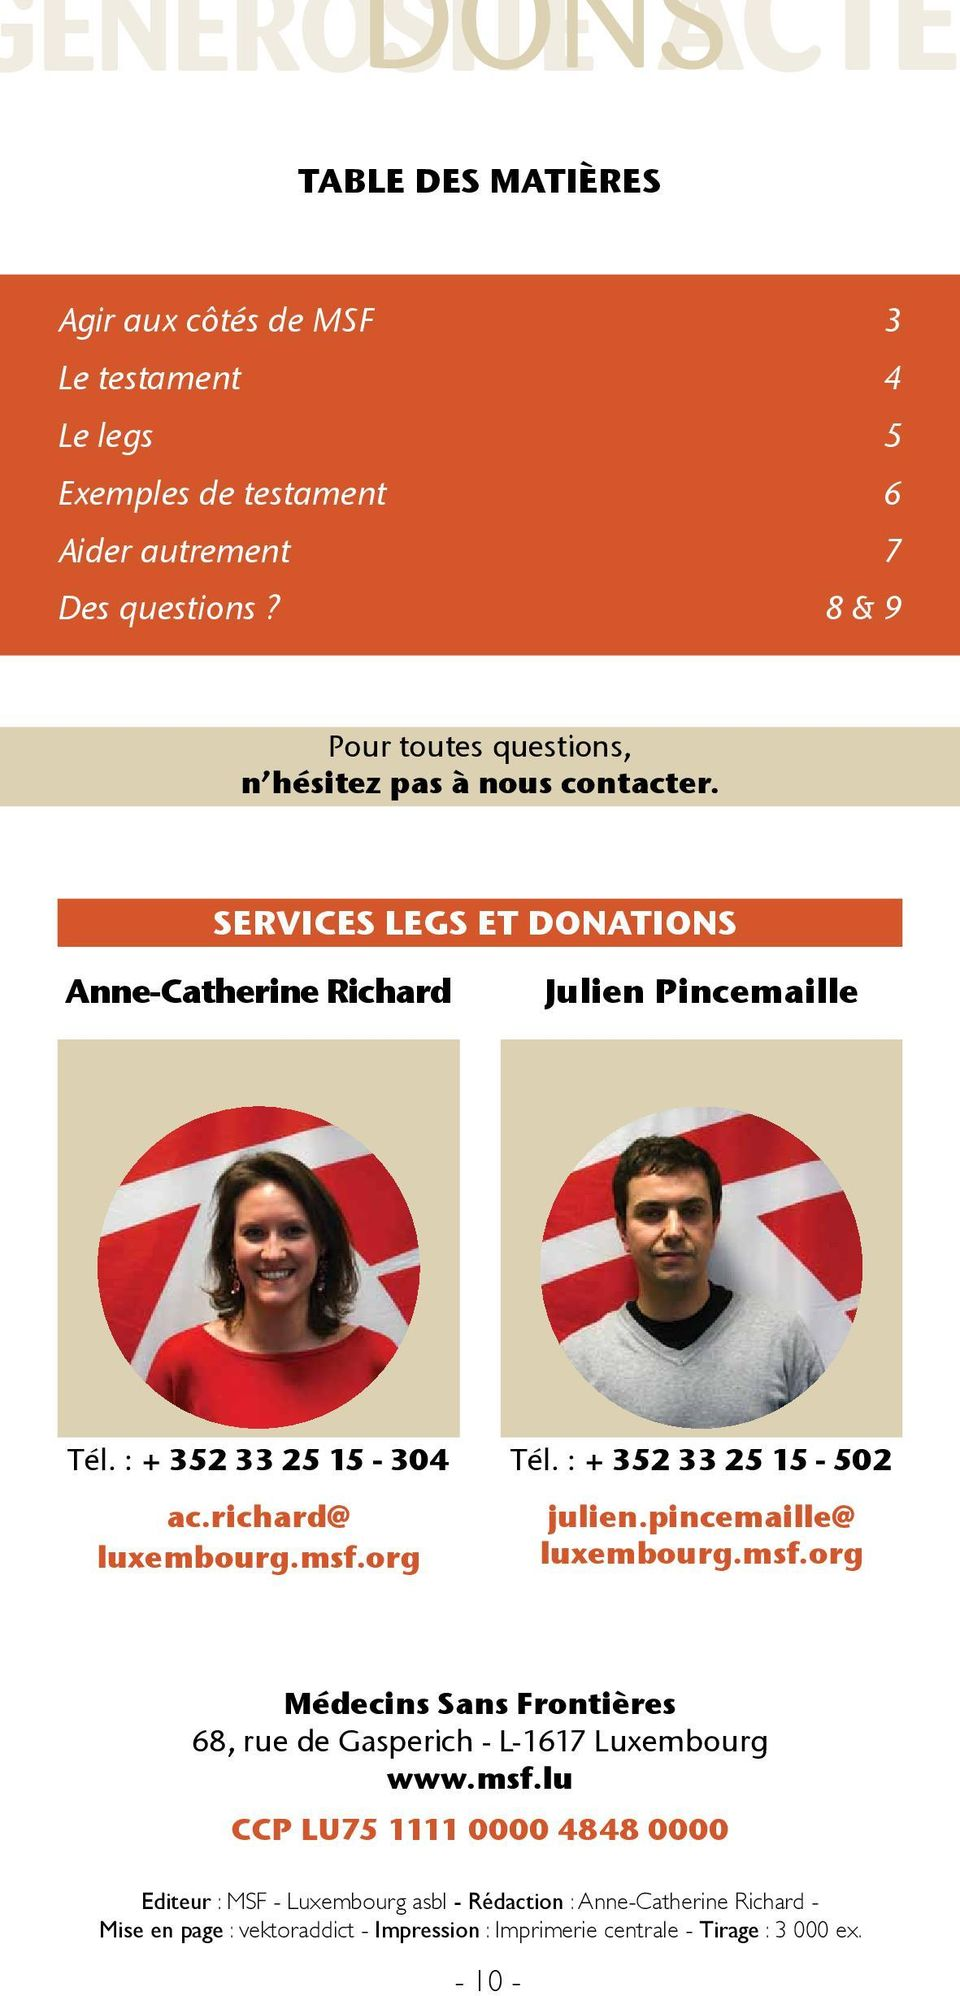 richard@ luxembourg.msf.org Tél. : + 352 33 25 15-502 julien.pincemaille@ luxembourg.msf.org Médecins Sans Frontières 68, rue de Gasperich - L-1617 Luxembourg www.